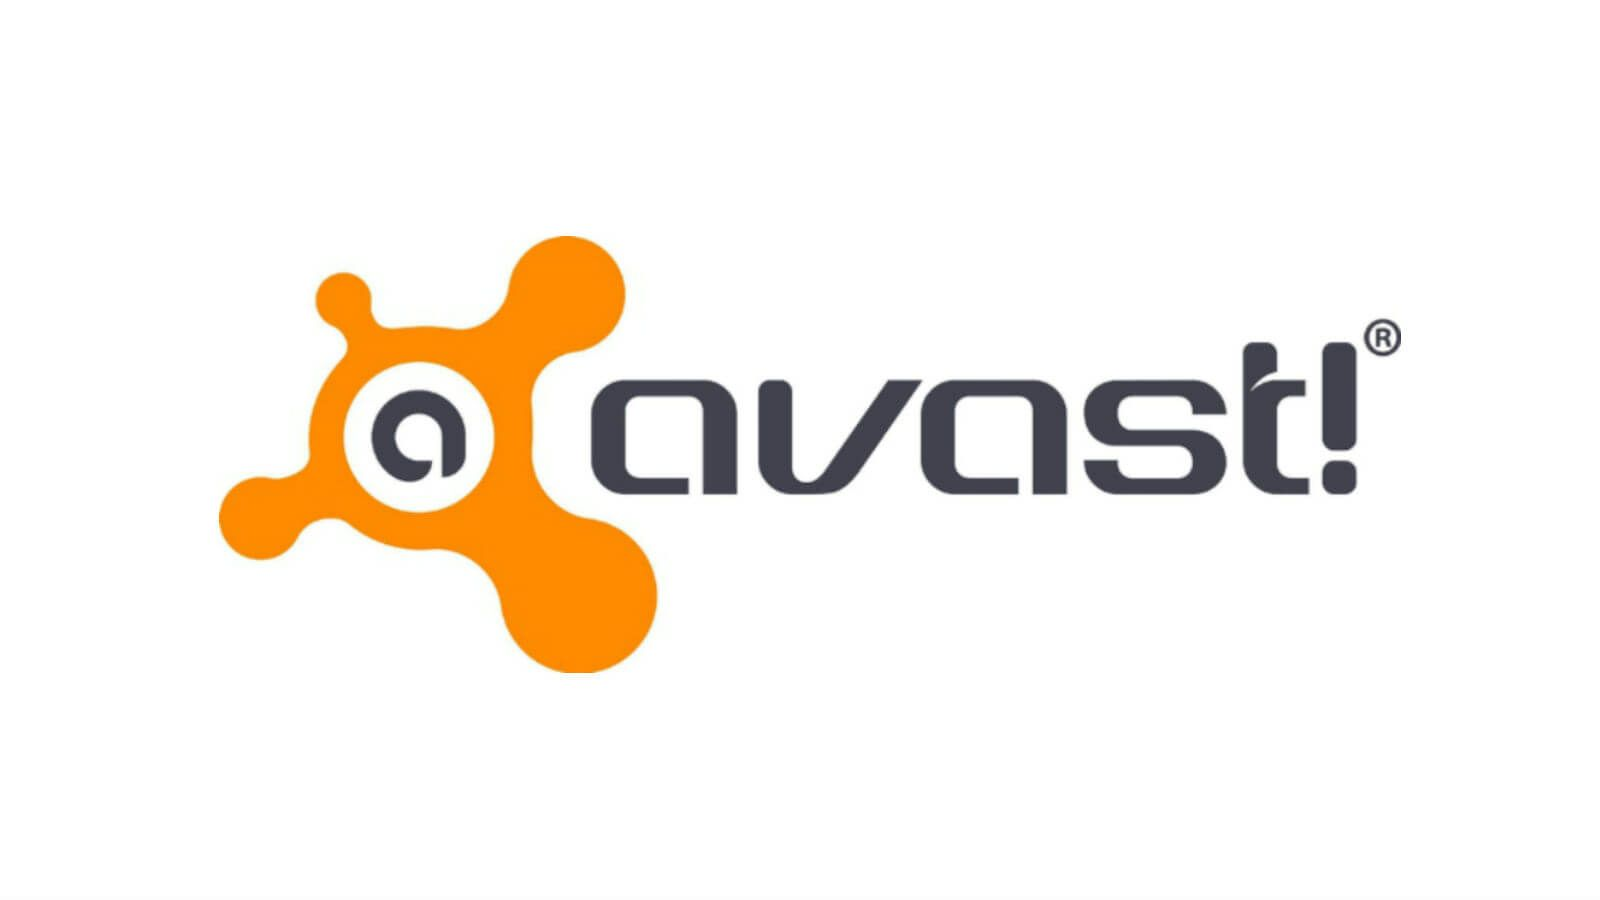 10 Best Avast Alternatives for Windows 10 8 and 7 In 2020